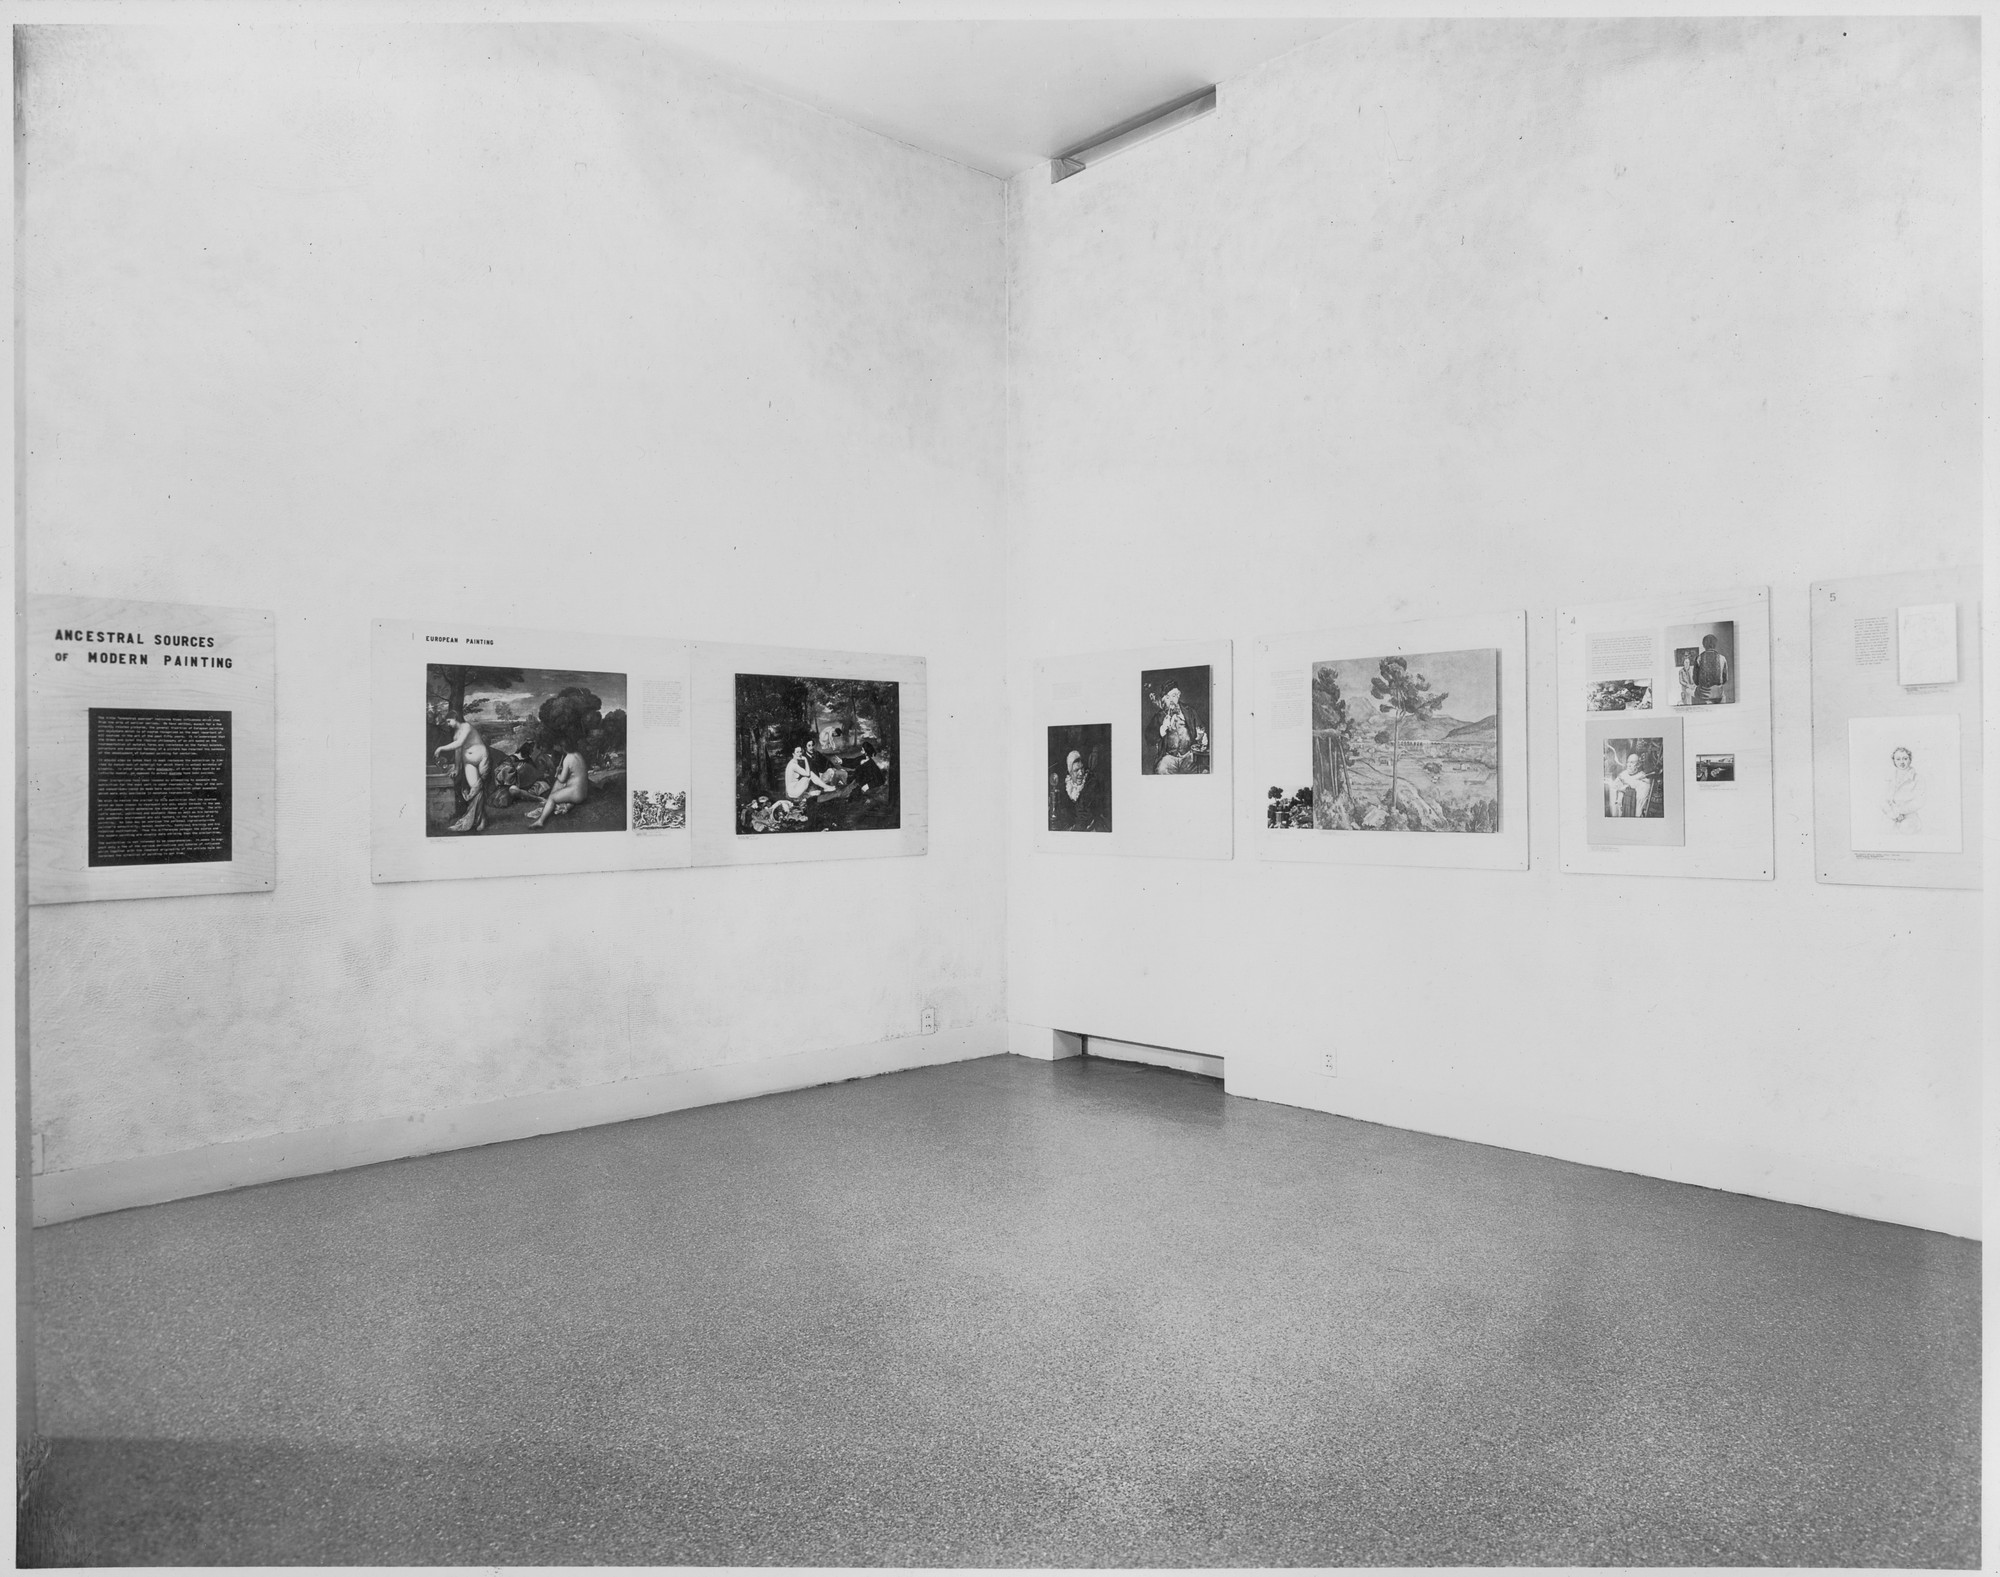 "Installation view of the exhibition, ""Ancestral Sources of Modern Painting."" August 26, 1941–September 15, 1941. Photographic Archive. The Museum of Modern Art Archives, New York. IN144.1. Photograph by Soichi Sunami."